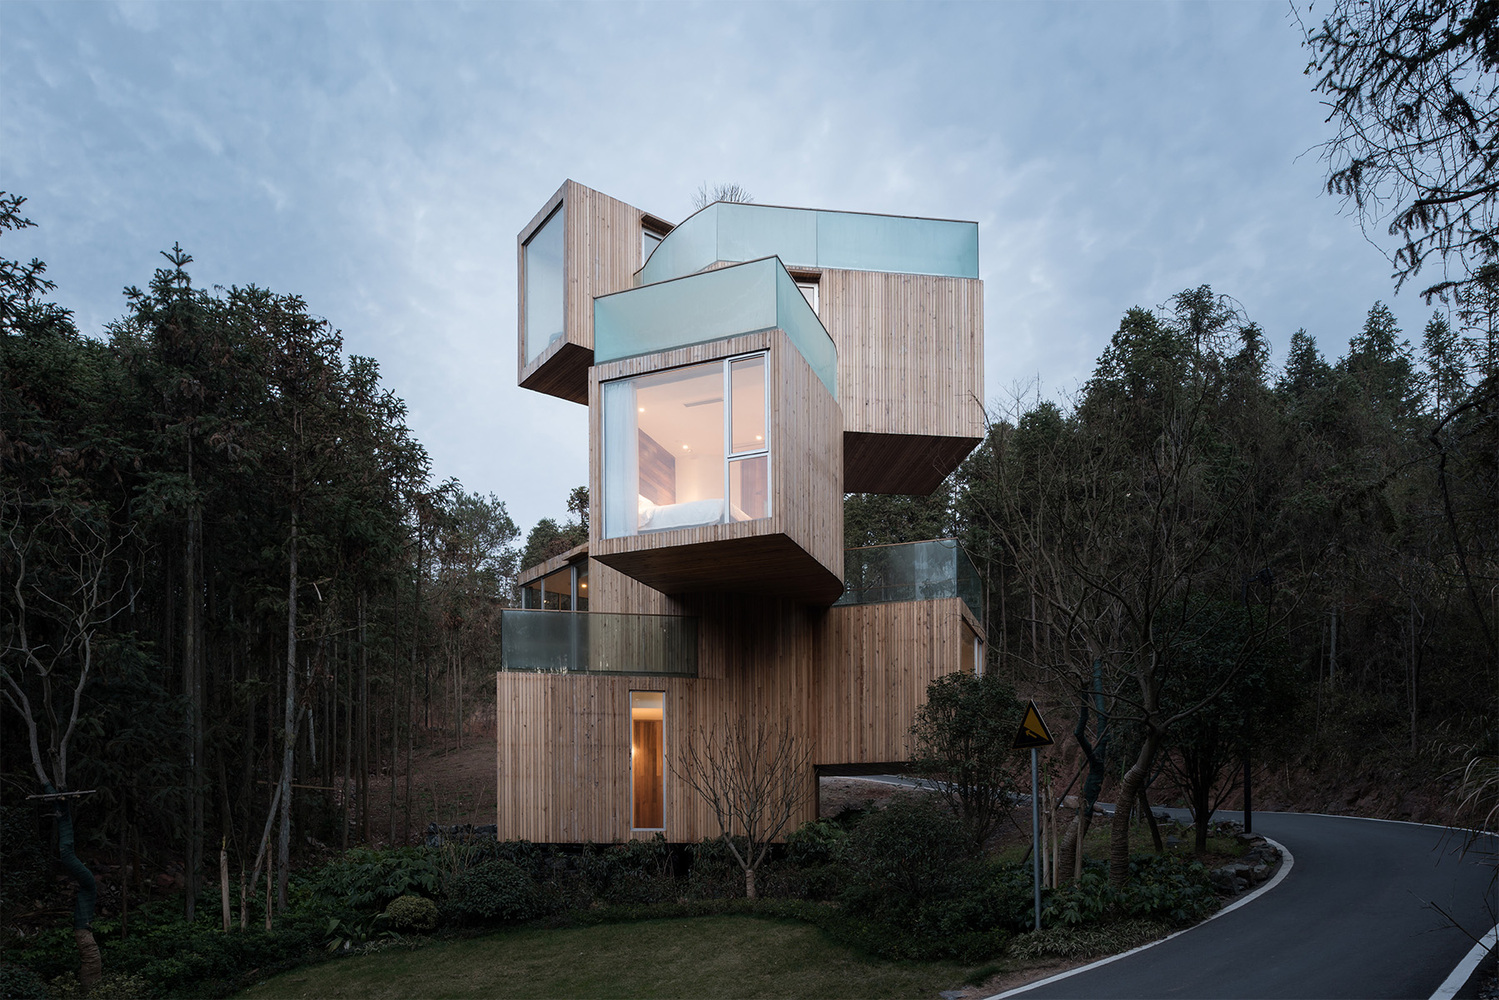 2_The Qiyun Mountain Tree House_Bengo Studio_Inspirationist